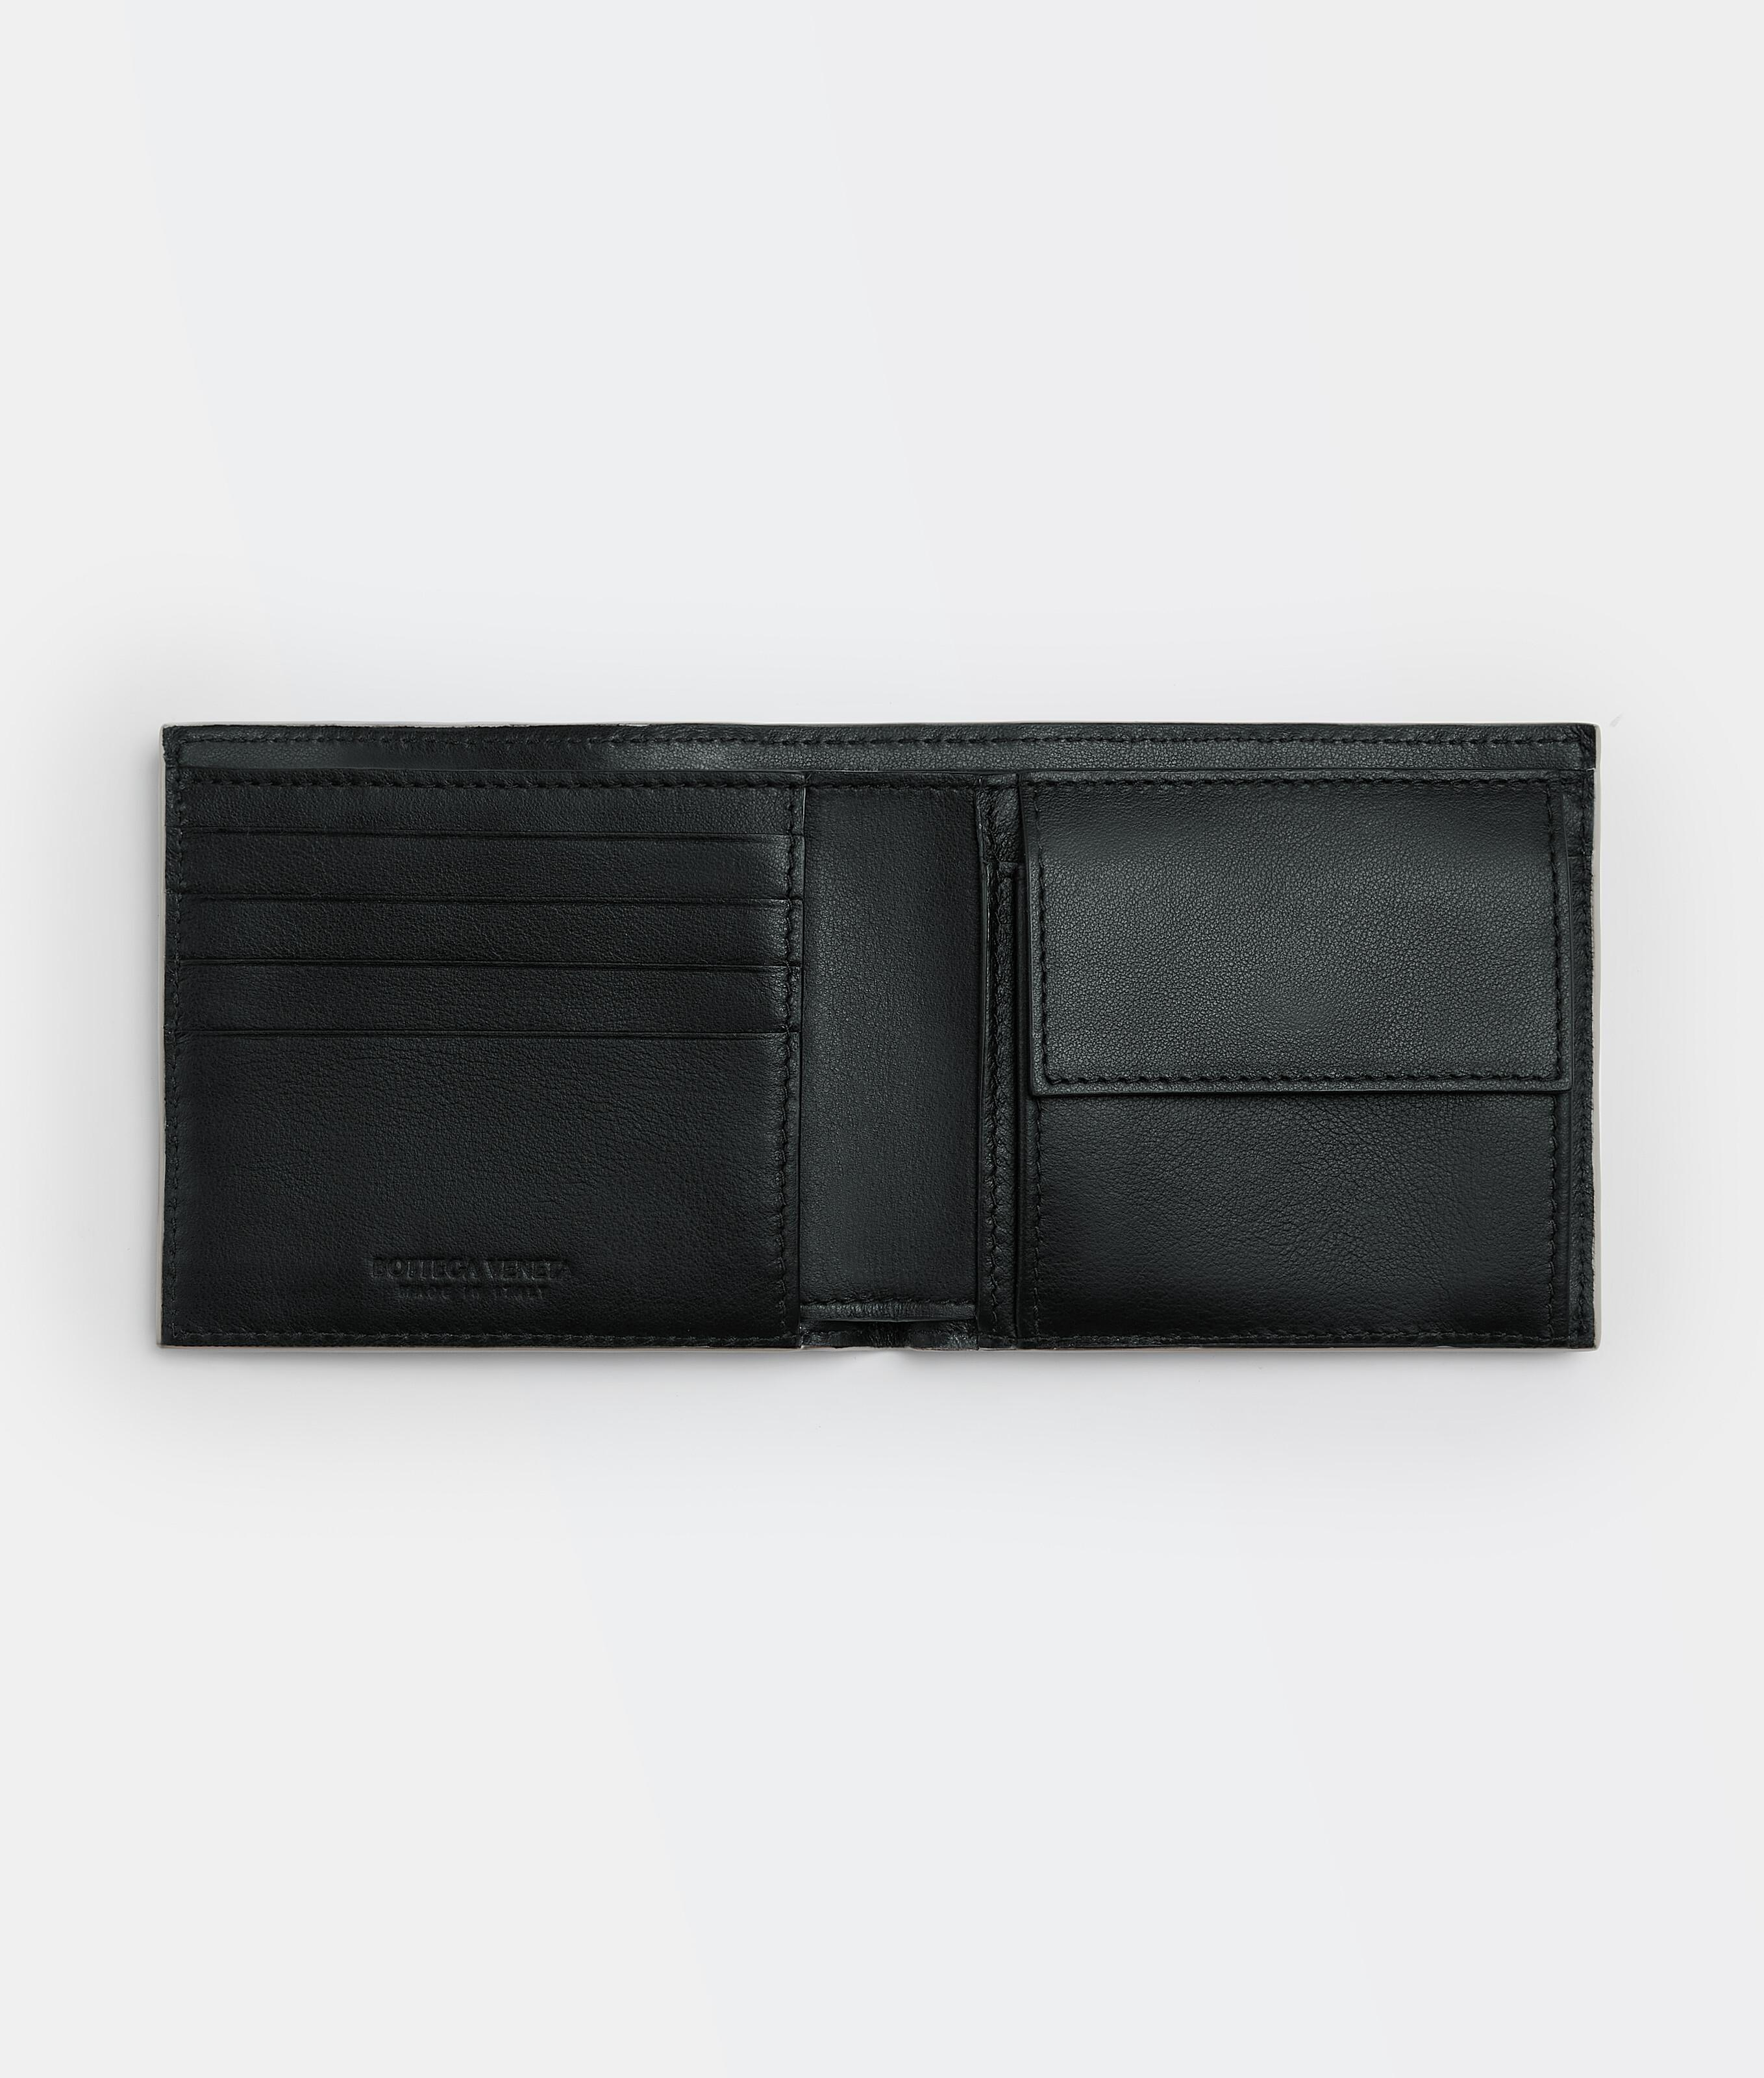 BI-FOLD WALLET WITH COIN PURSE 1